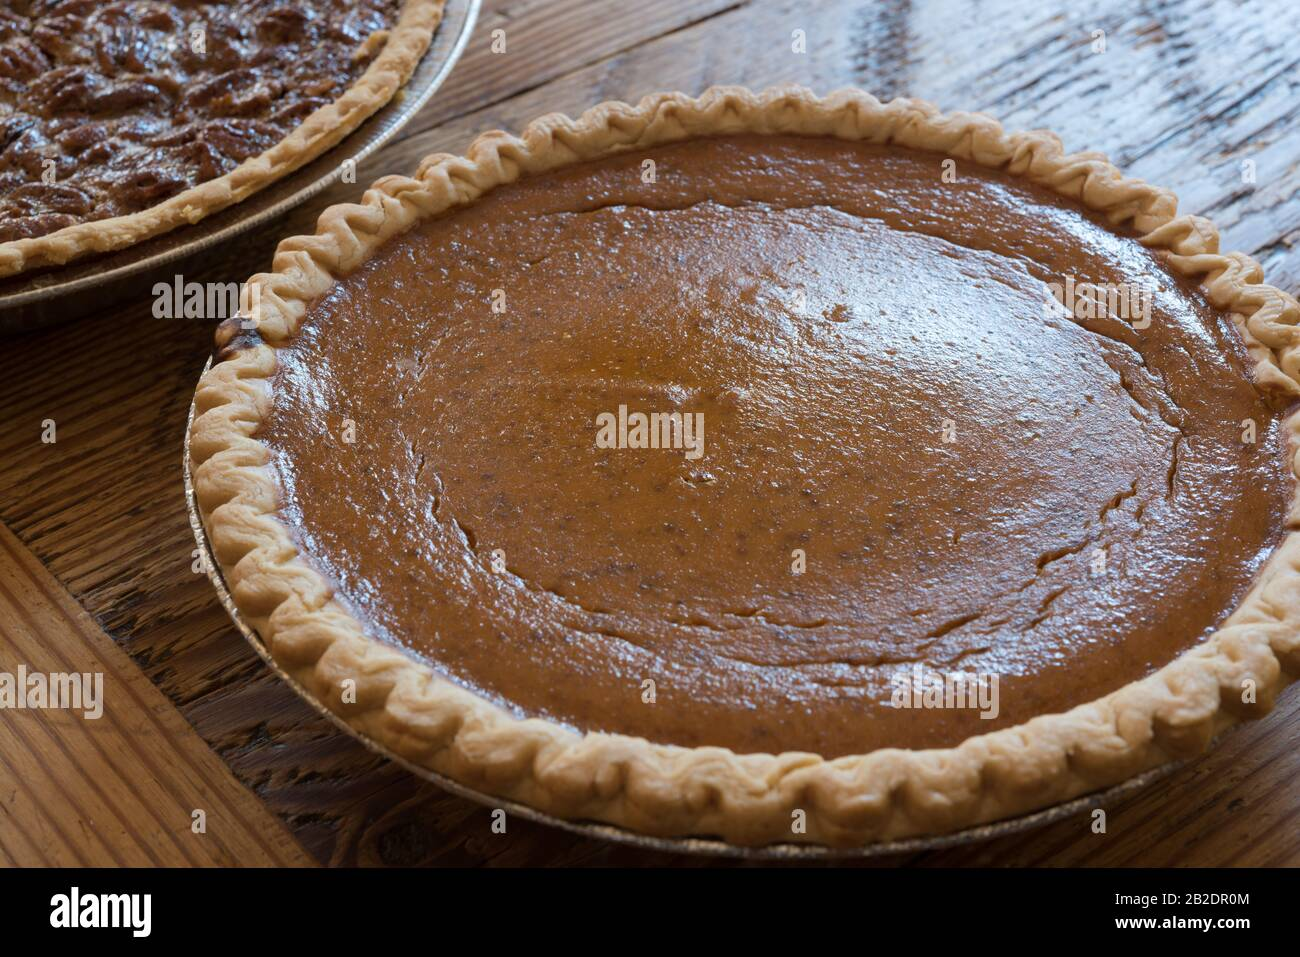 A Homemade pumpkin pie on old painted wood table Stock Photo